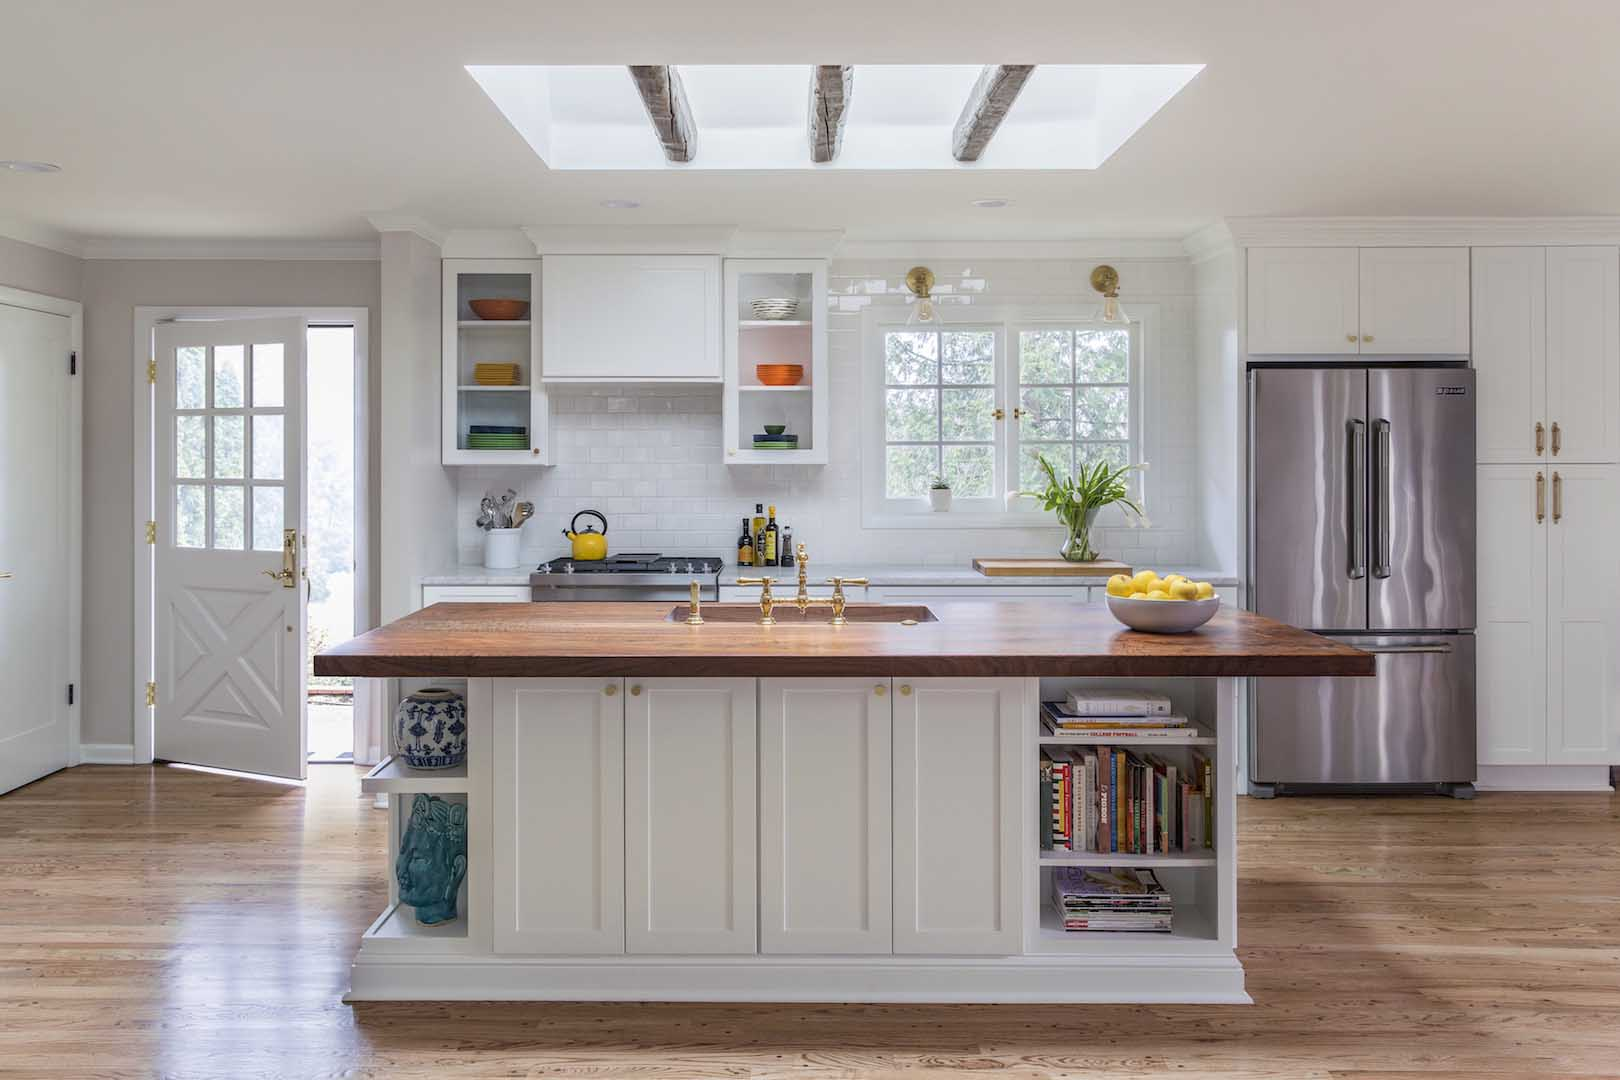 Full kitchen with open shelving, island, and skylight with rustic beams